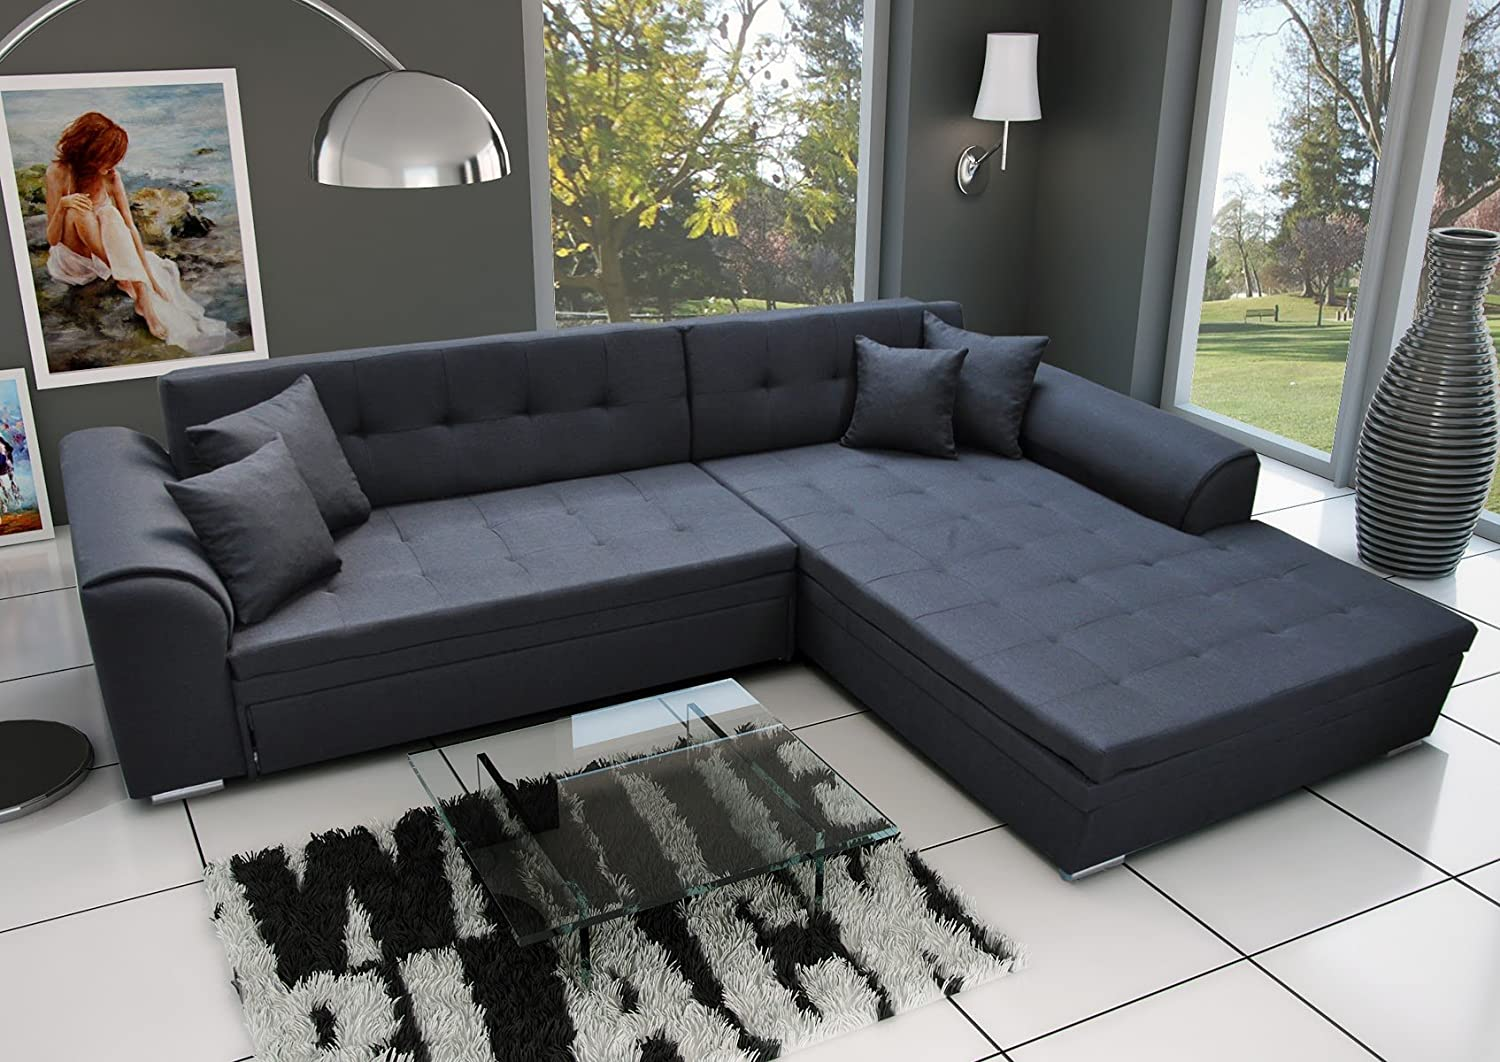 couch couchgarnitur sofa polsterecke sorento wohnlandschaft schlaffunktion g nstig kaufen. Black Bedroom Furniture Sets. Home Design Ideas